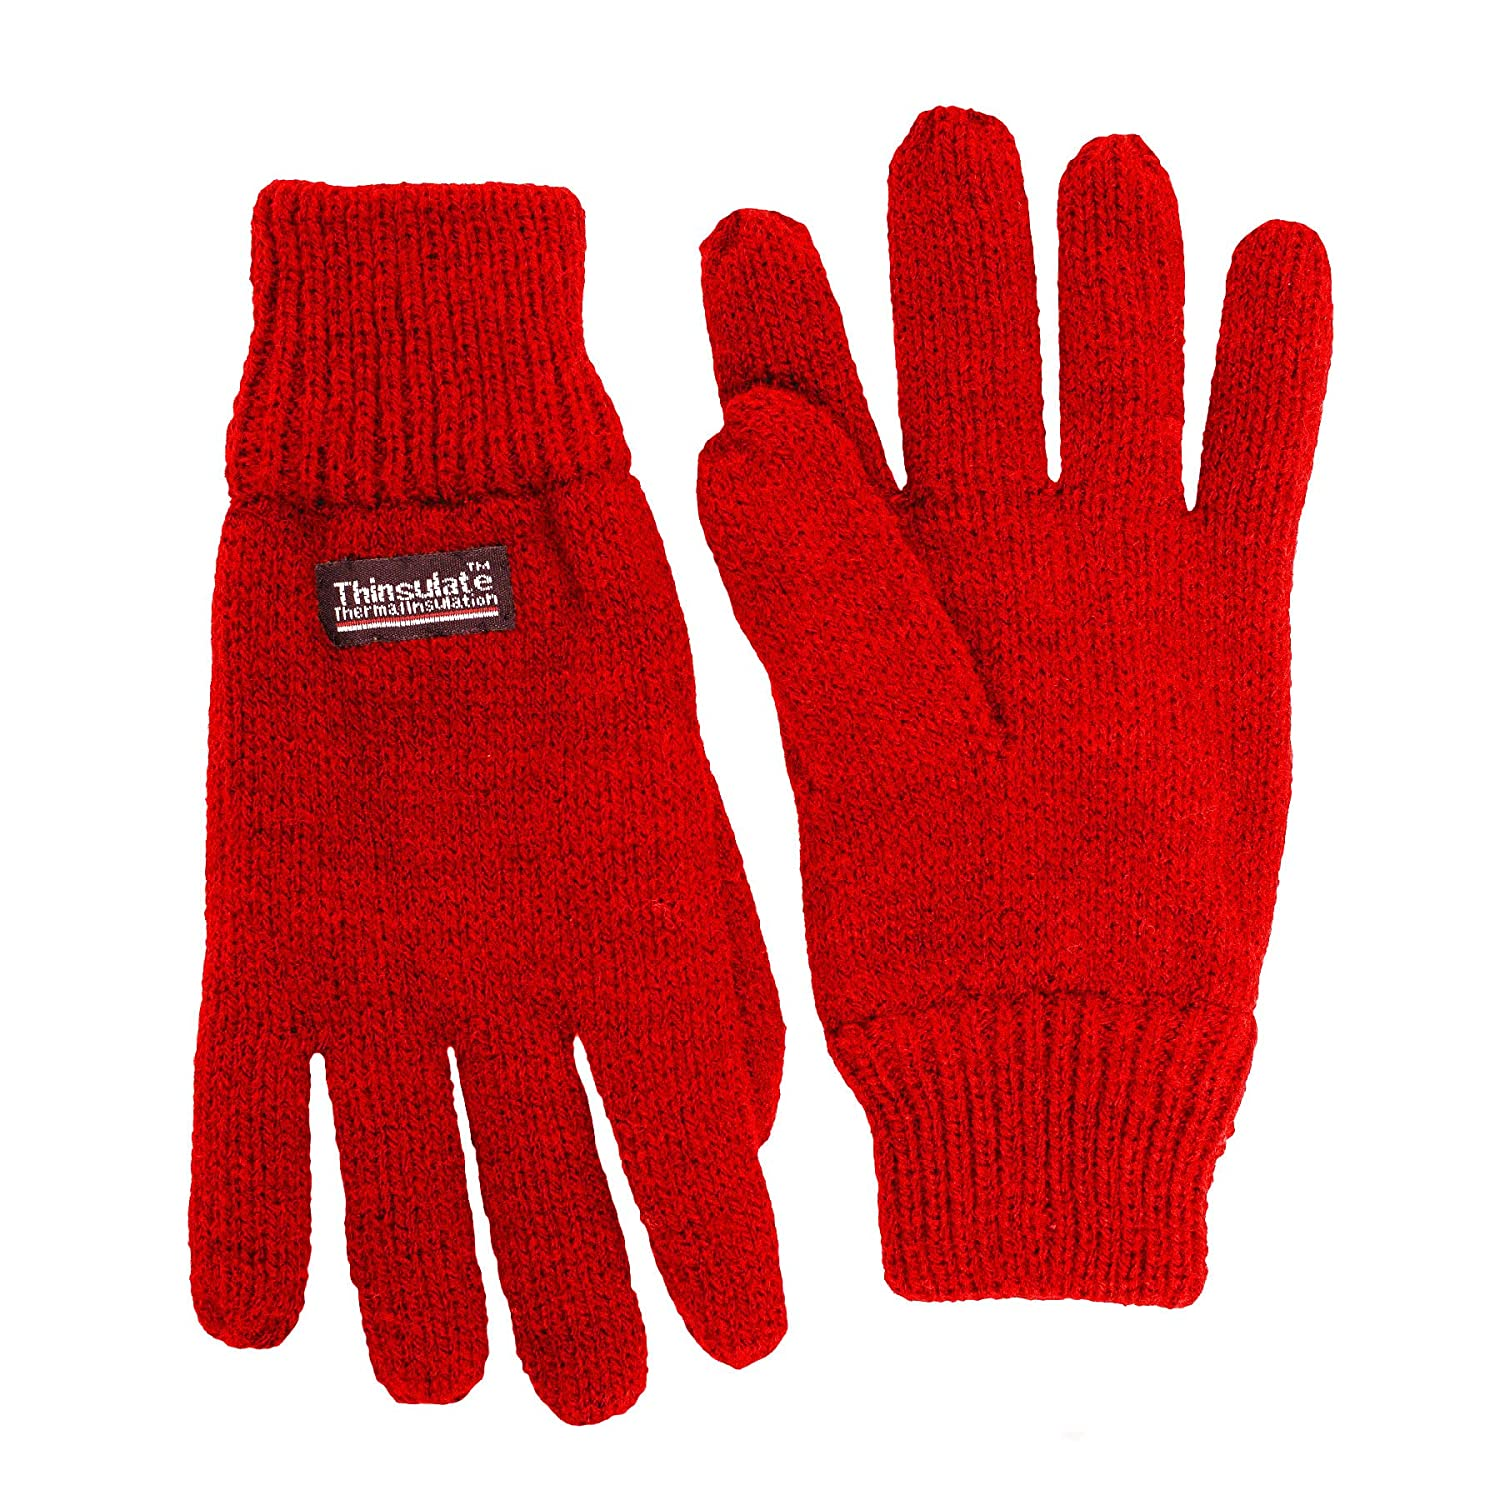 SANREMO Women's Warm Knitted Fleece Lined Winter Gloves Sanremo Fashions 2650-L